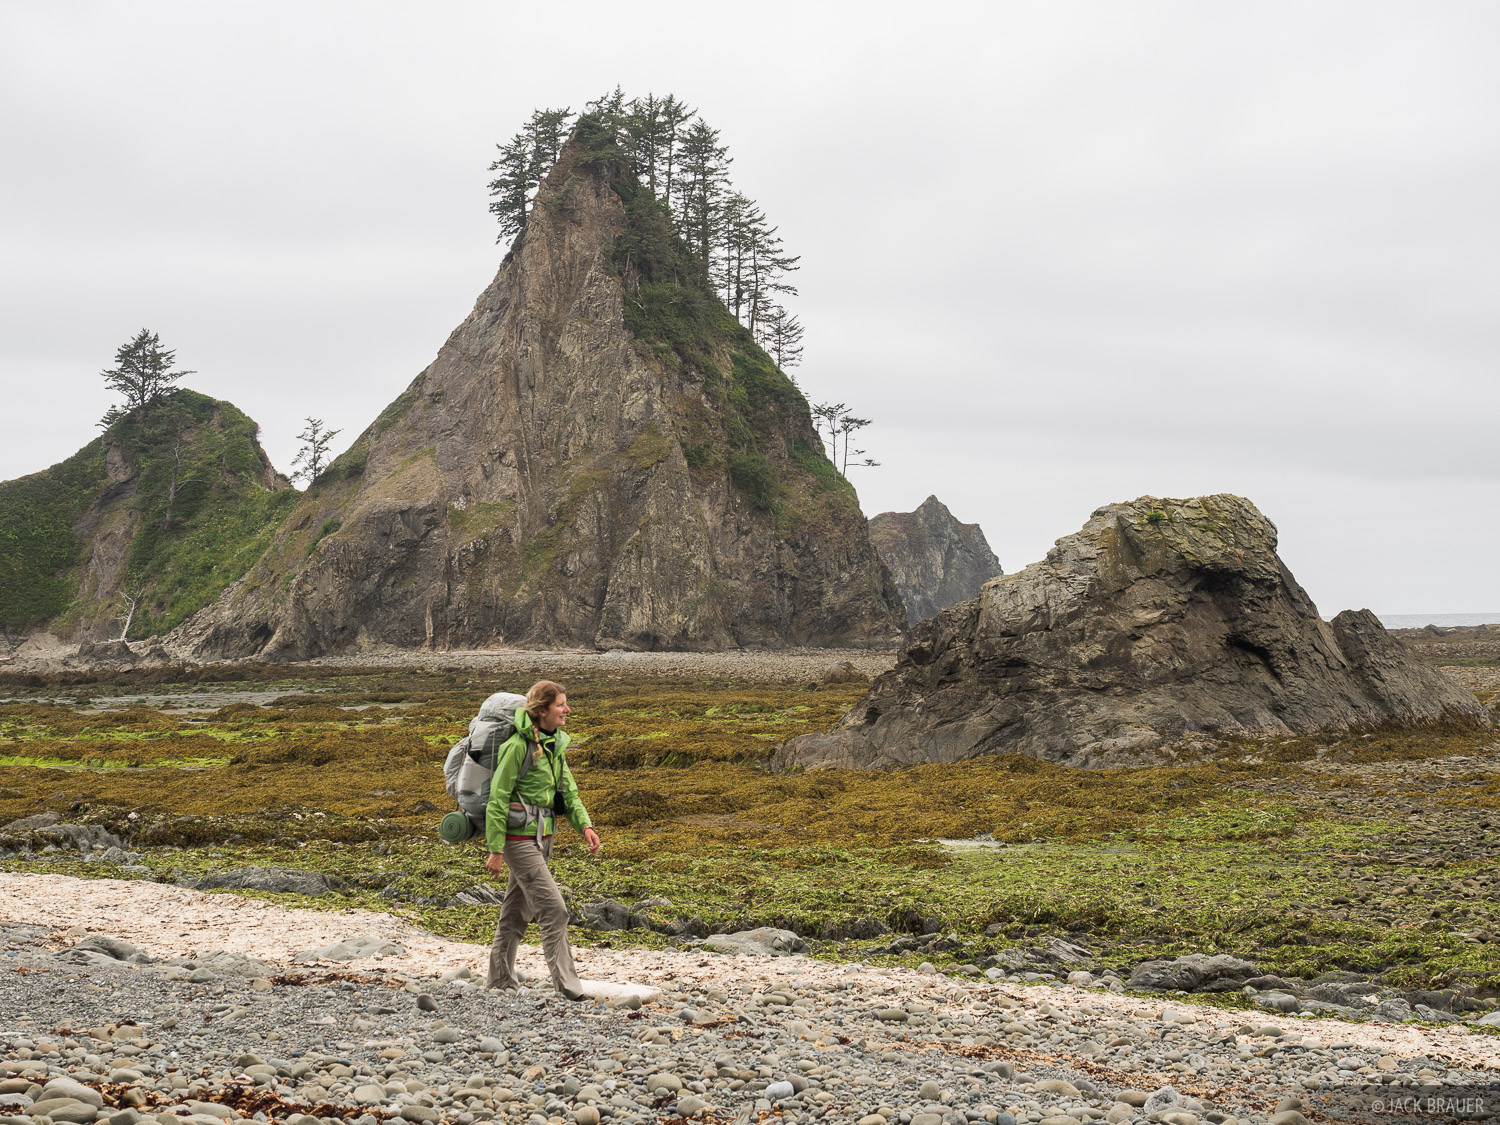 Olympic Peninsula, Washington, Olympic National Park, hiking, photo